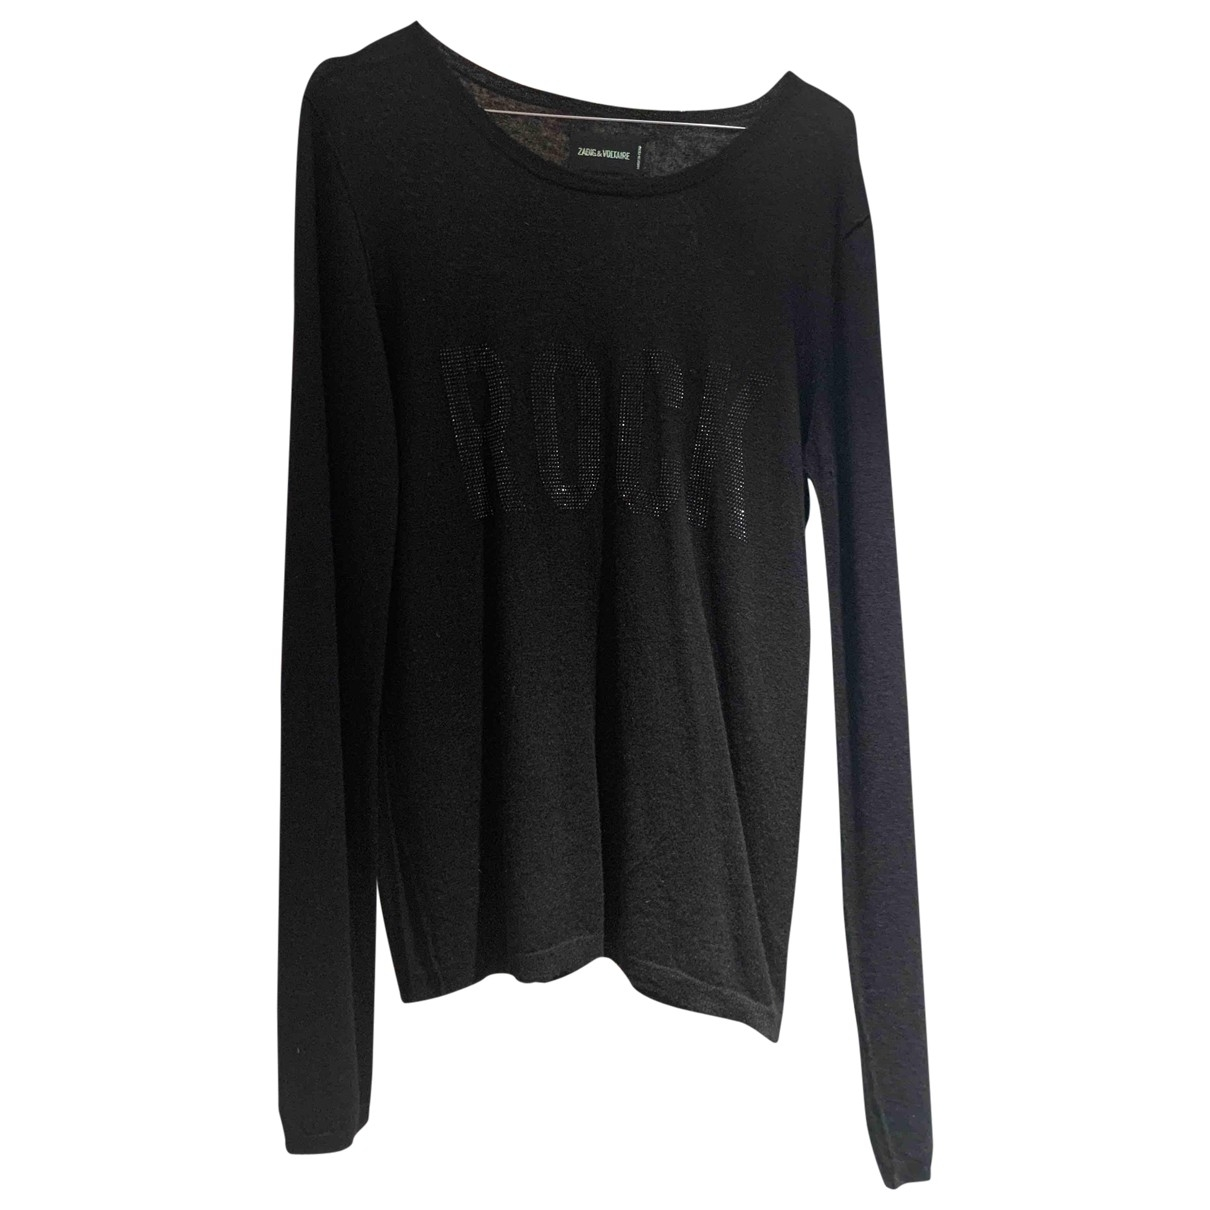 Zadig & Voltaire \N Black Cashmere Knitwear for Women M International